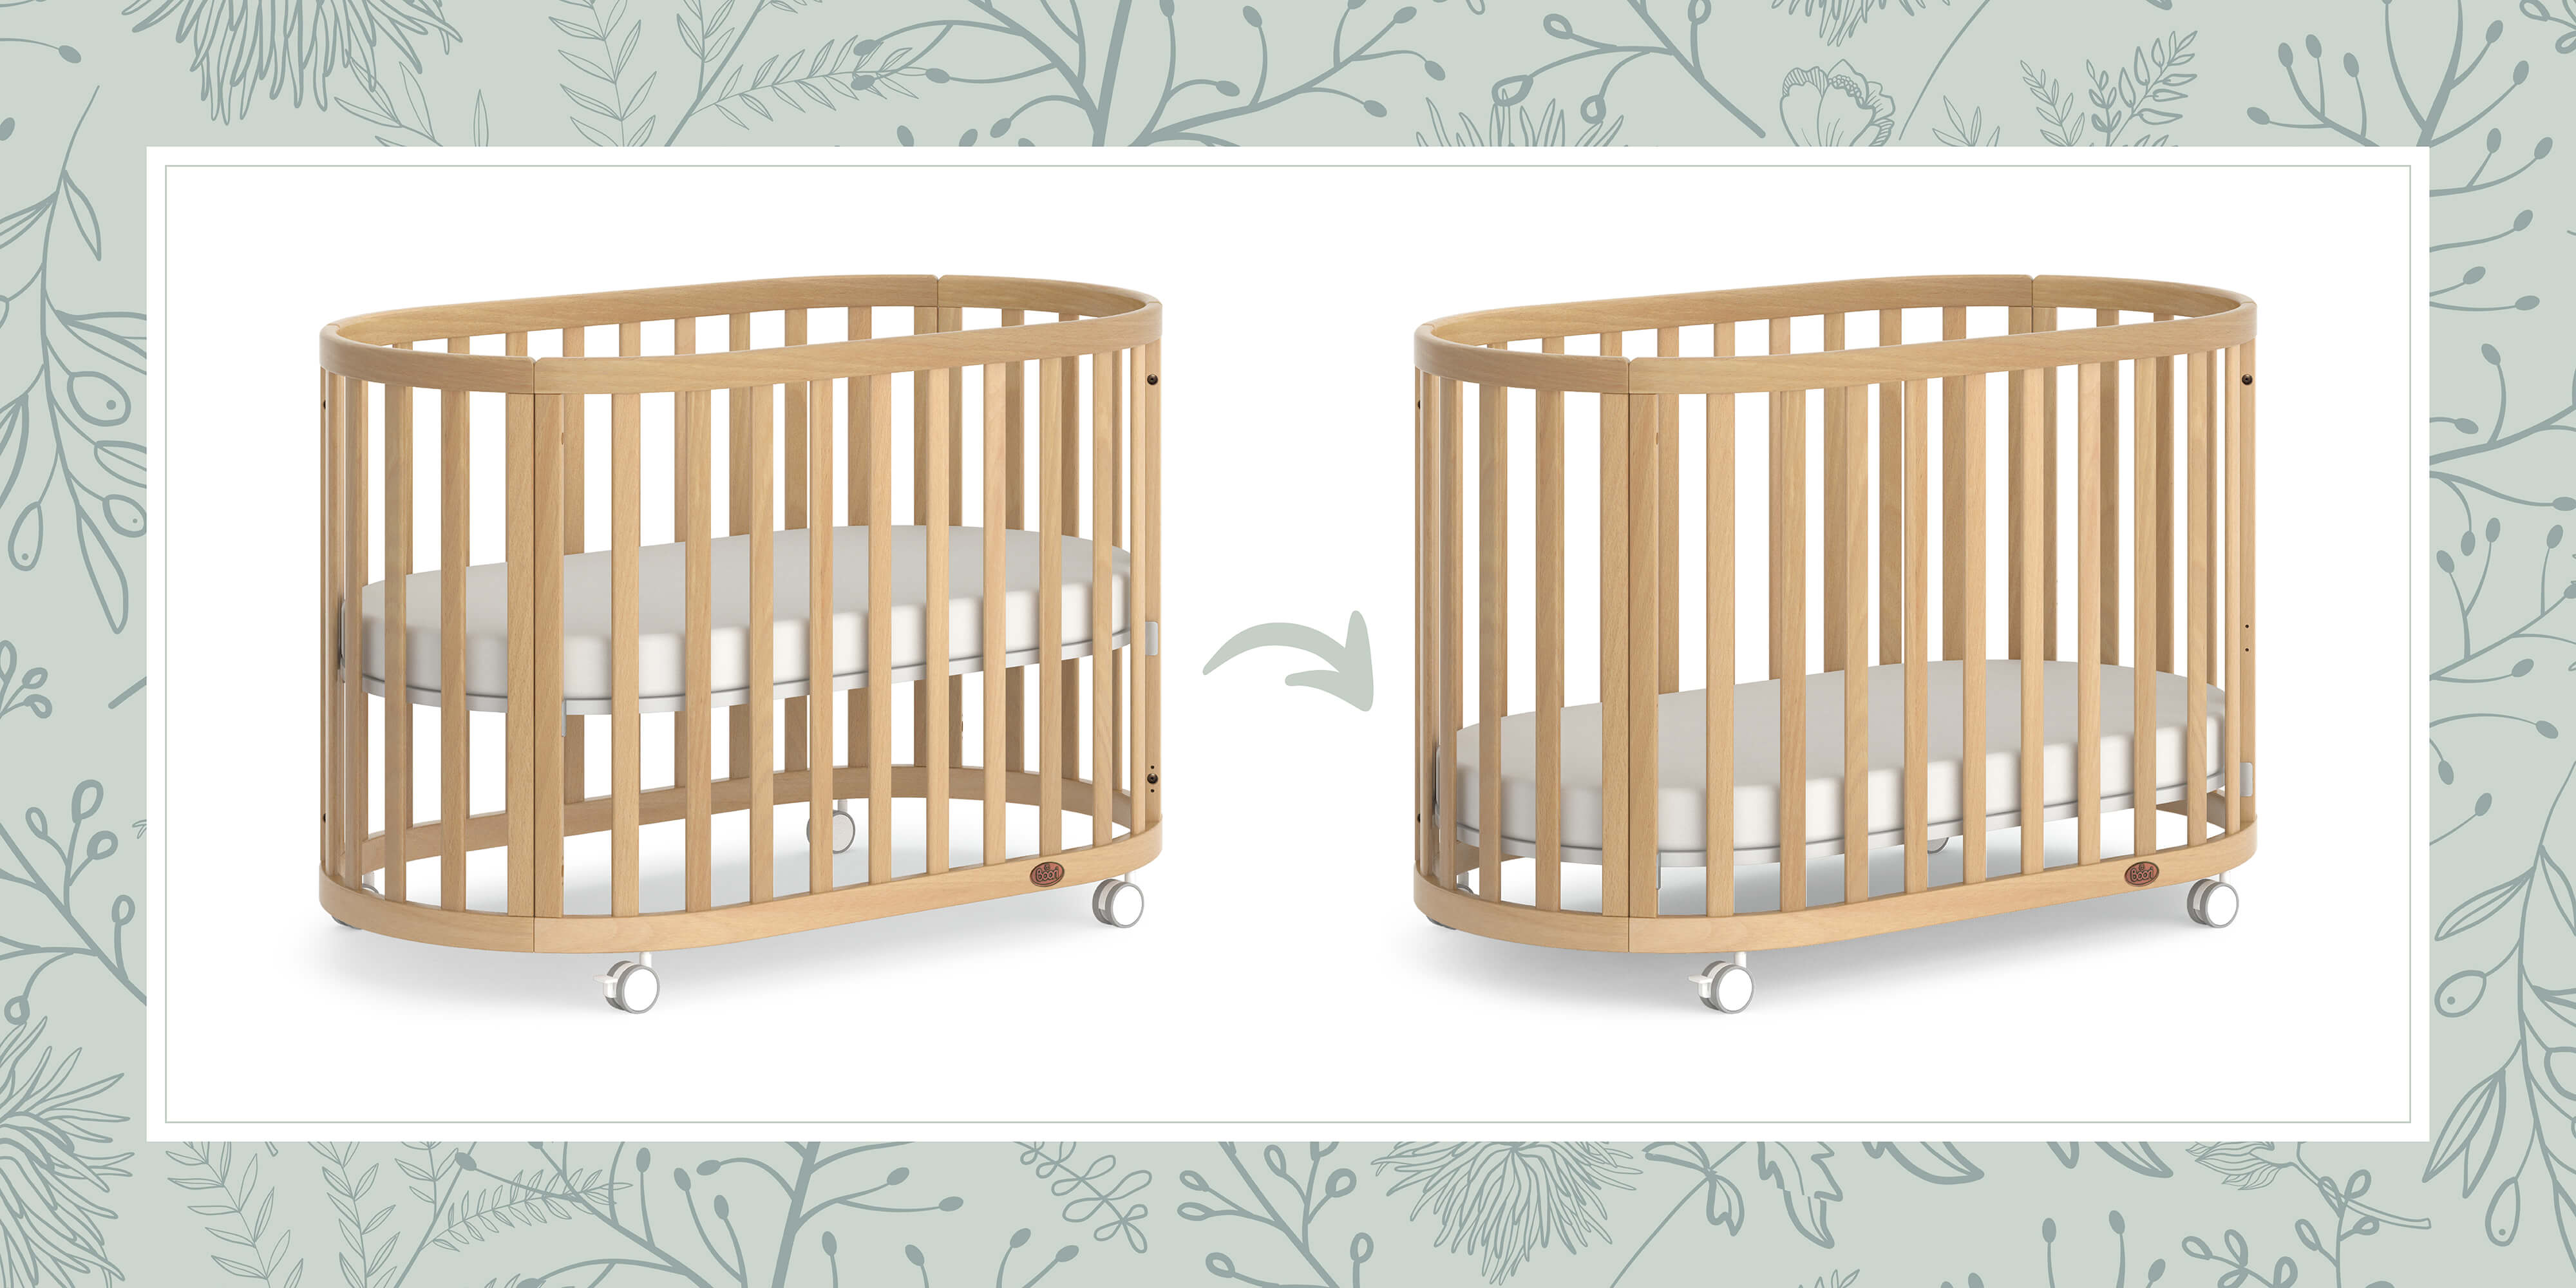 Eden Oval Cot in Low and High Base Height positions